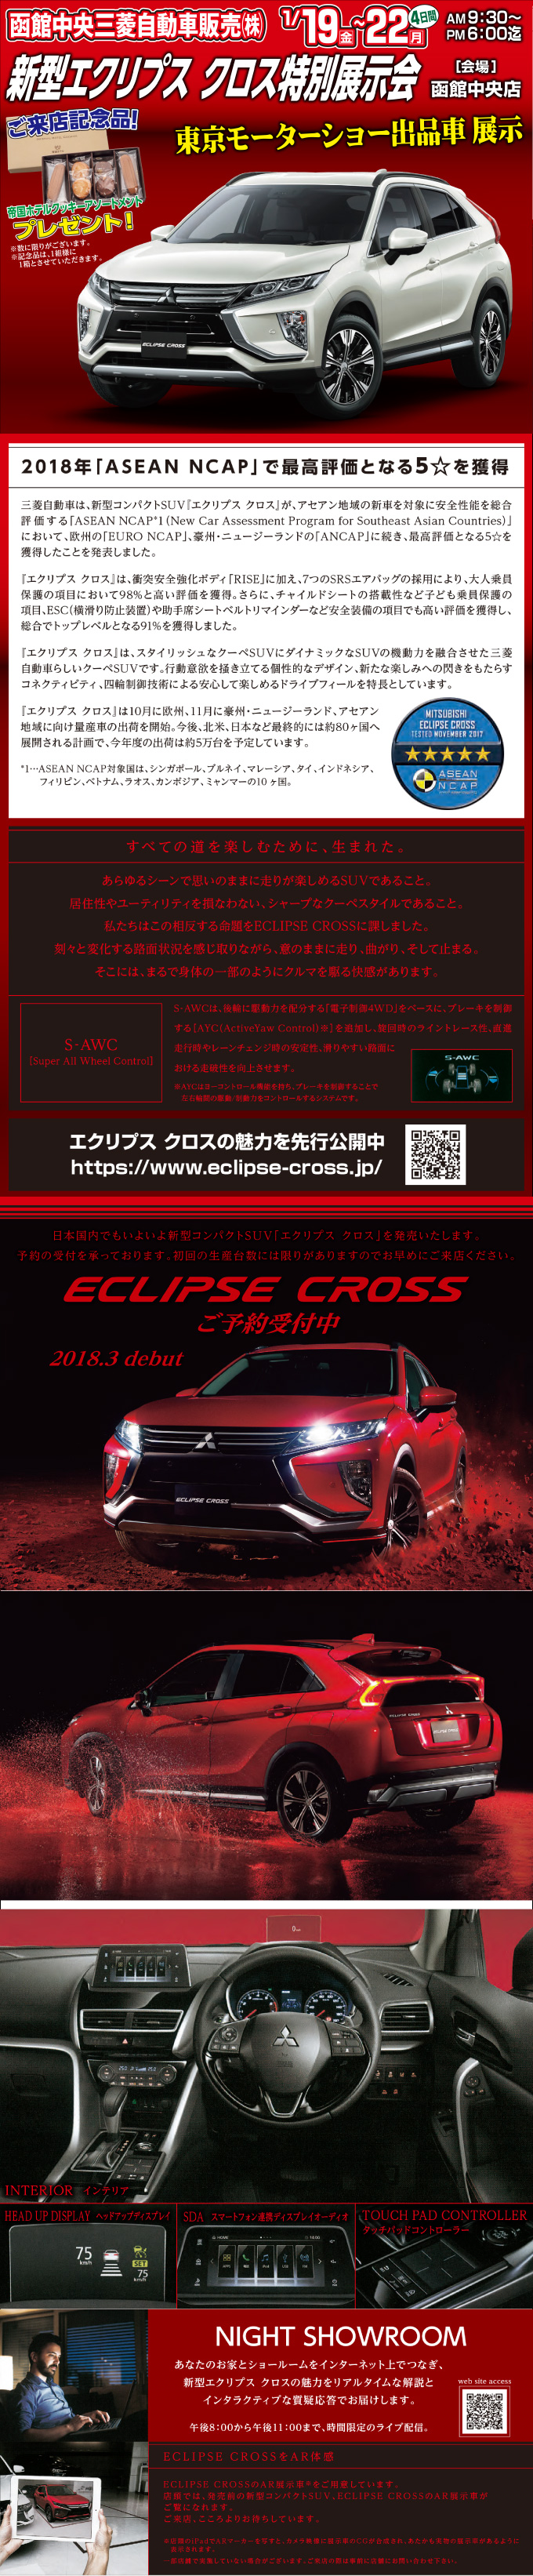 eclipse-cross